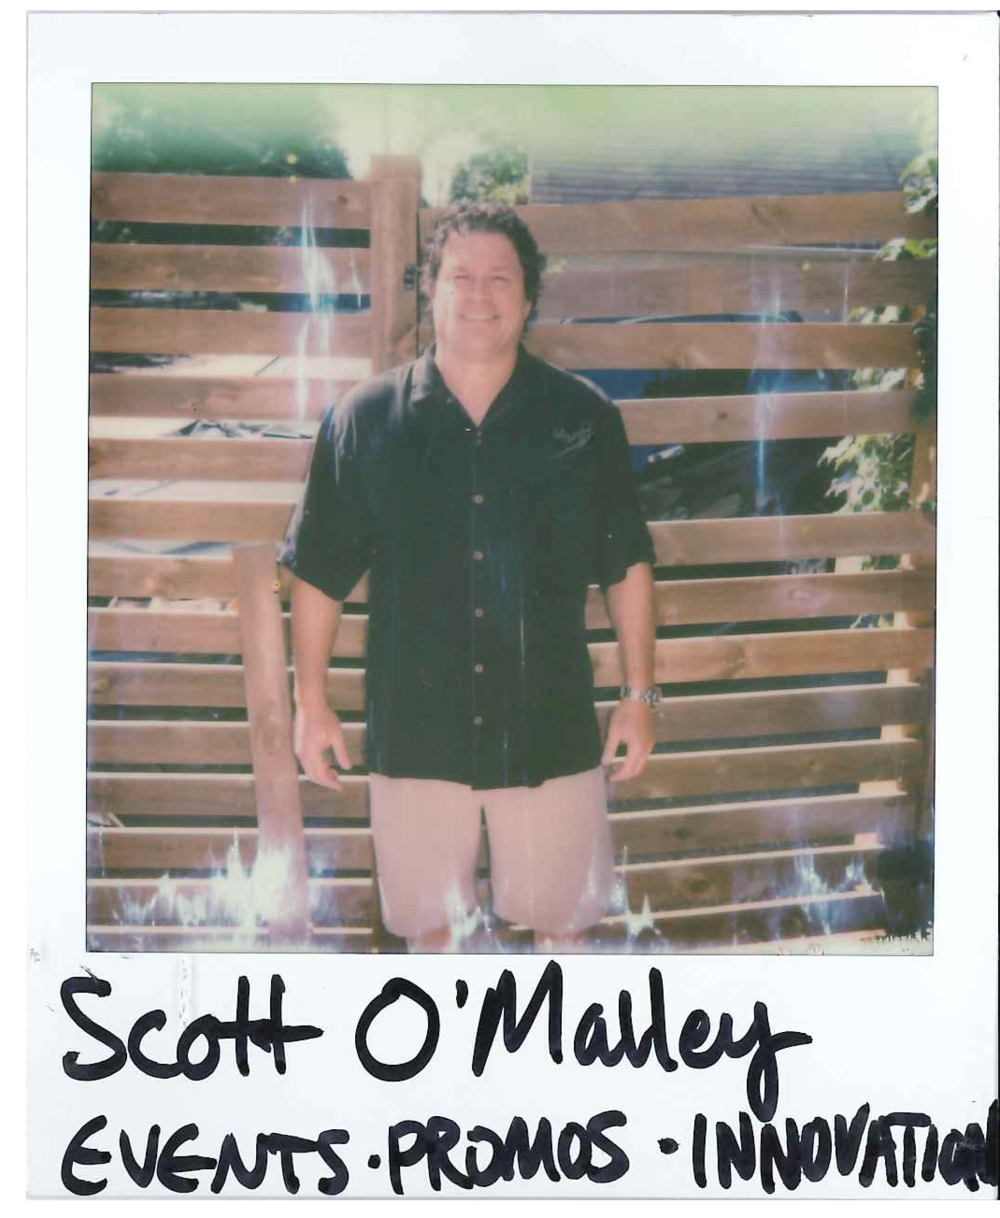 Scott O'Malley  -  Alive & Social Network , Events, Promos and Innovation